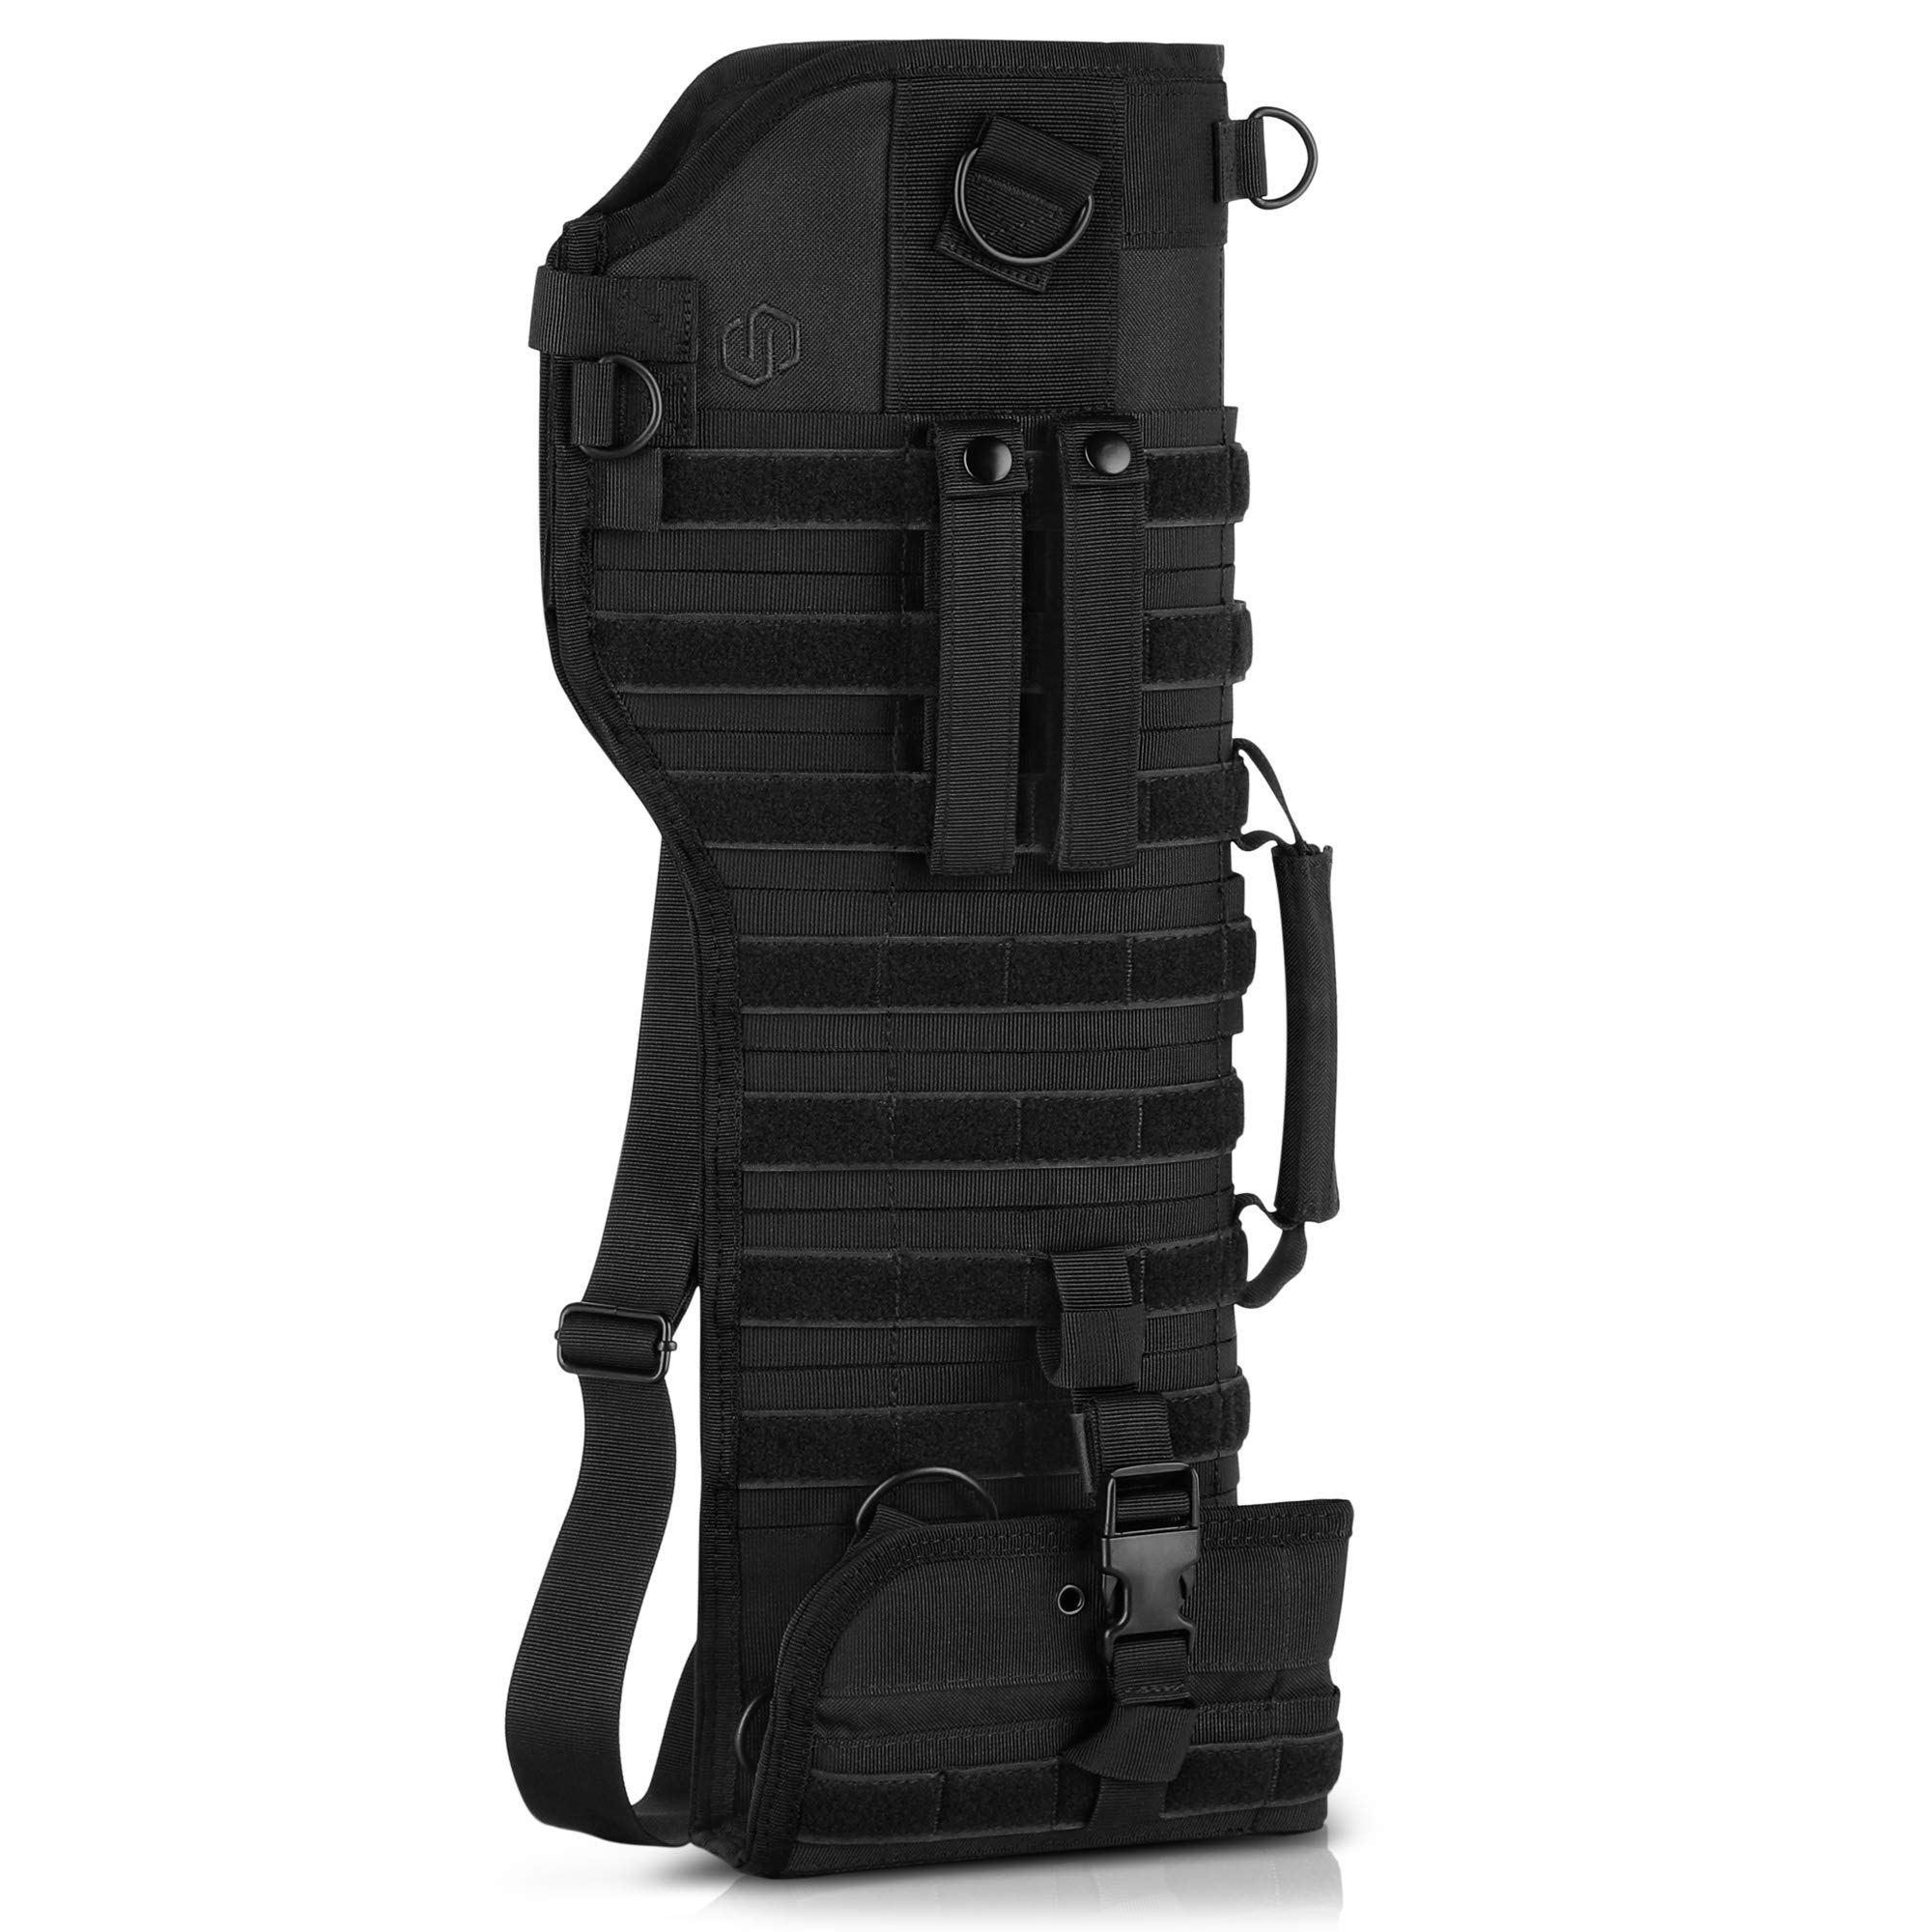 Savior Equipment Premium Tactical Shotgun Rifle Scabbard MOLLE Gun Case - Adjustable Carry Shoulder Strap, Firearm Protection Sling Bag by Savior Equipment